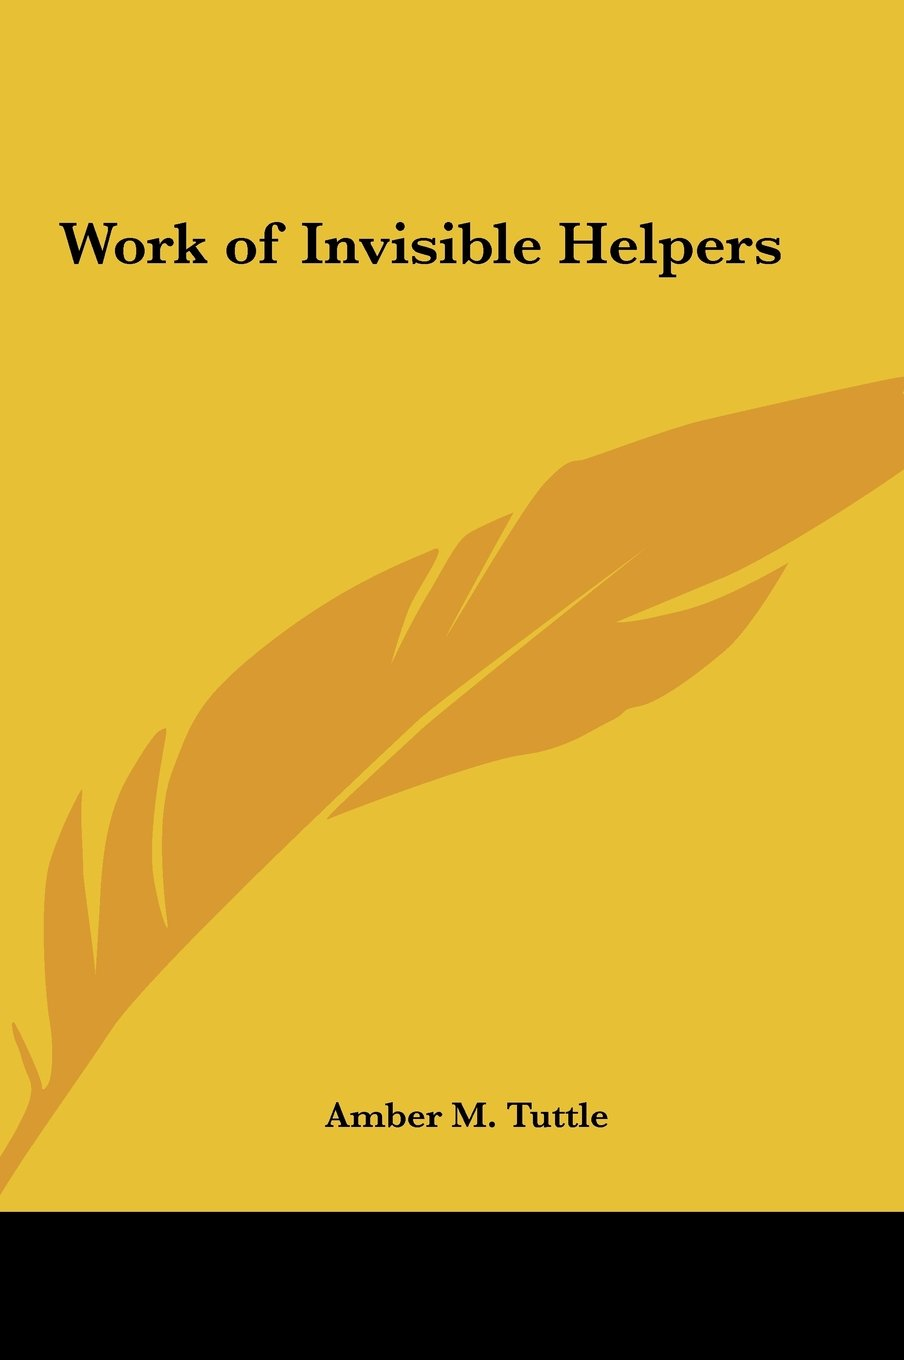 Download Work of Invisible Helpers PDF